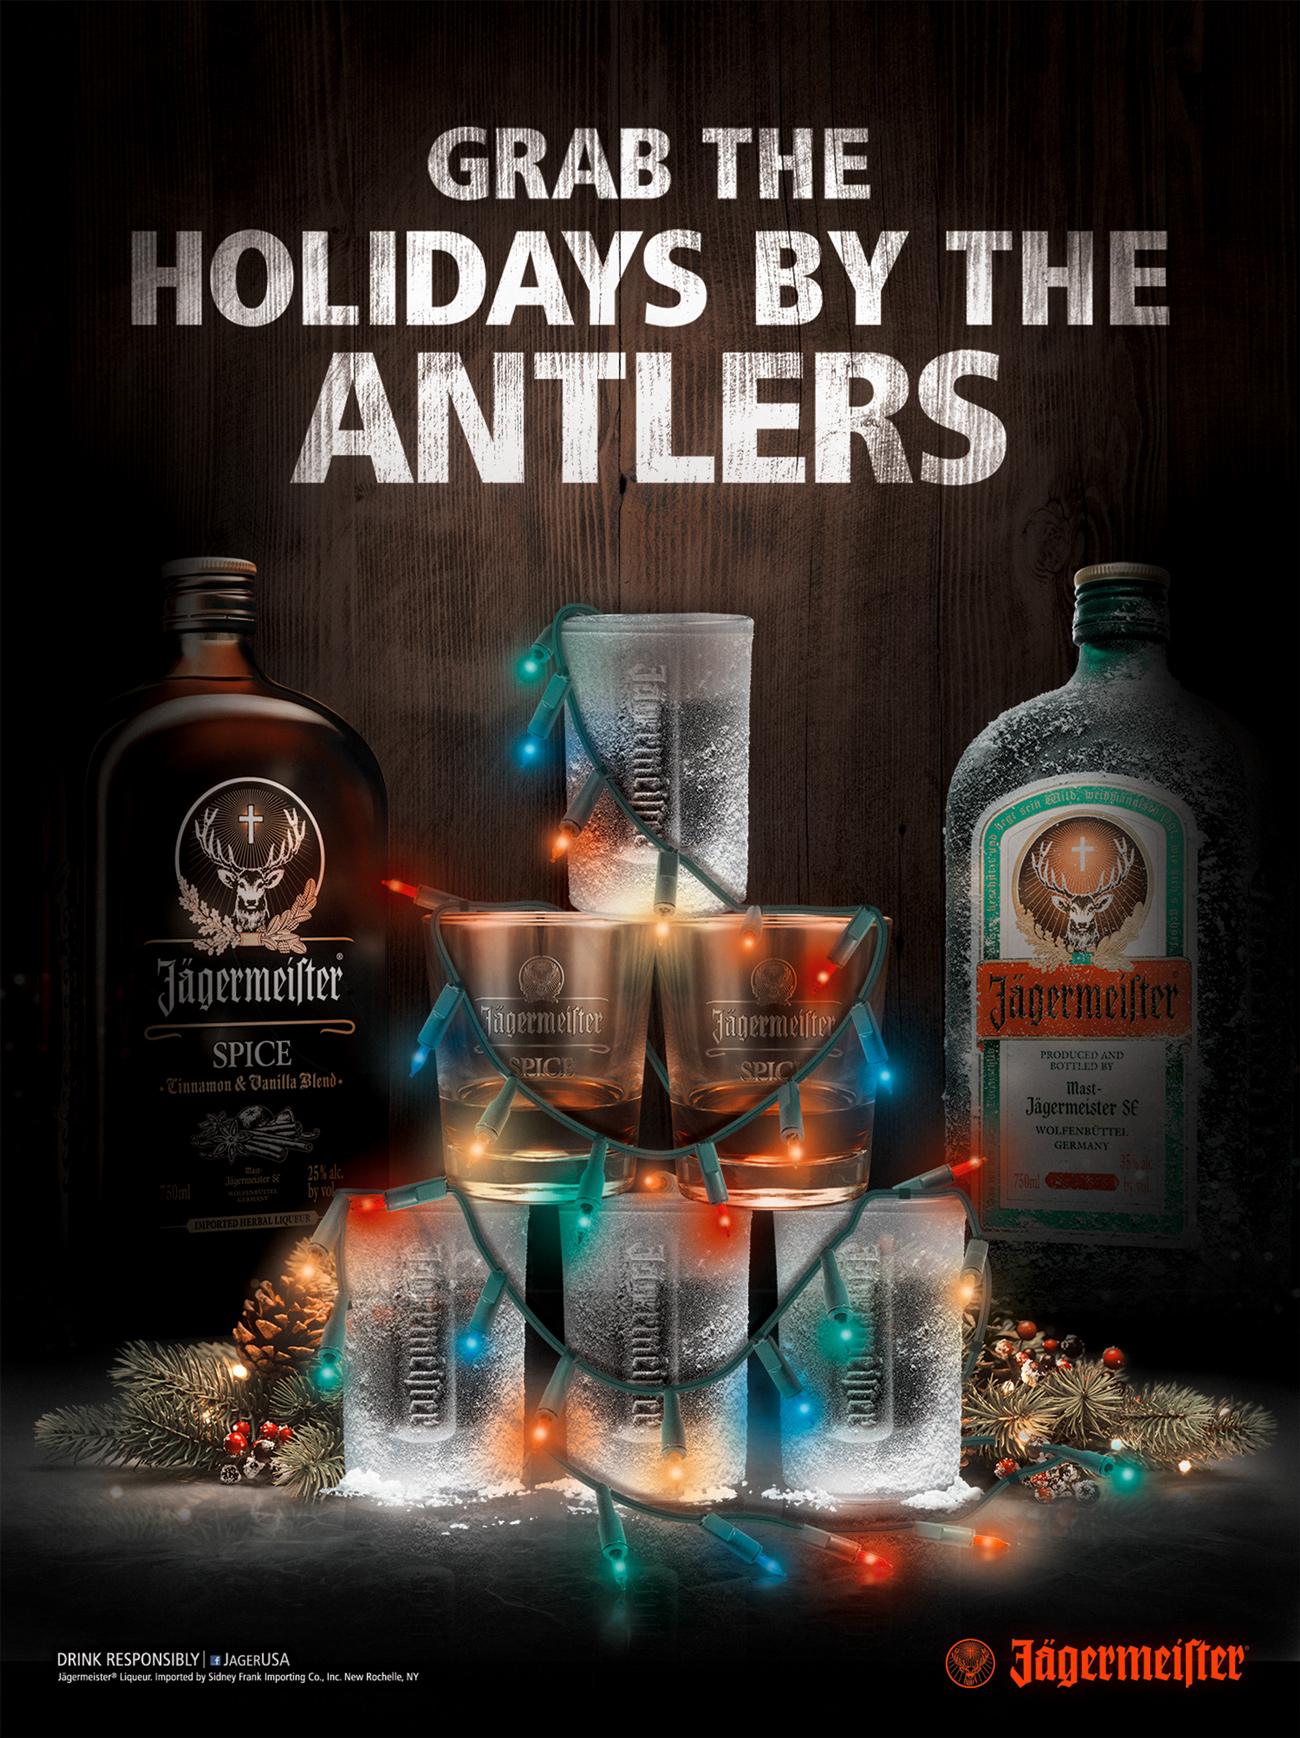 Paul_Molina_Jagermeister_Holiday_Branding_1